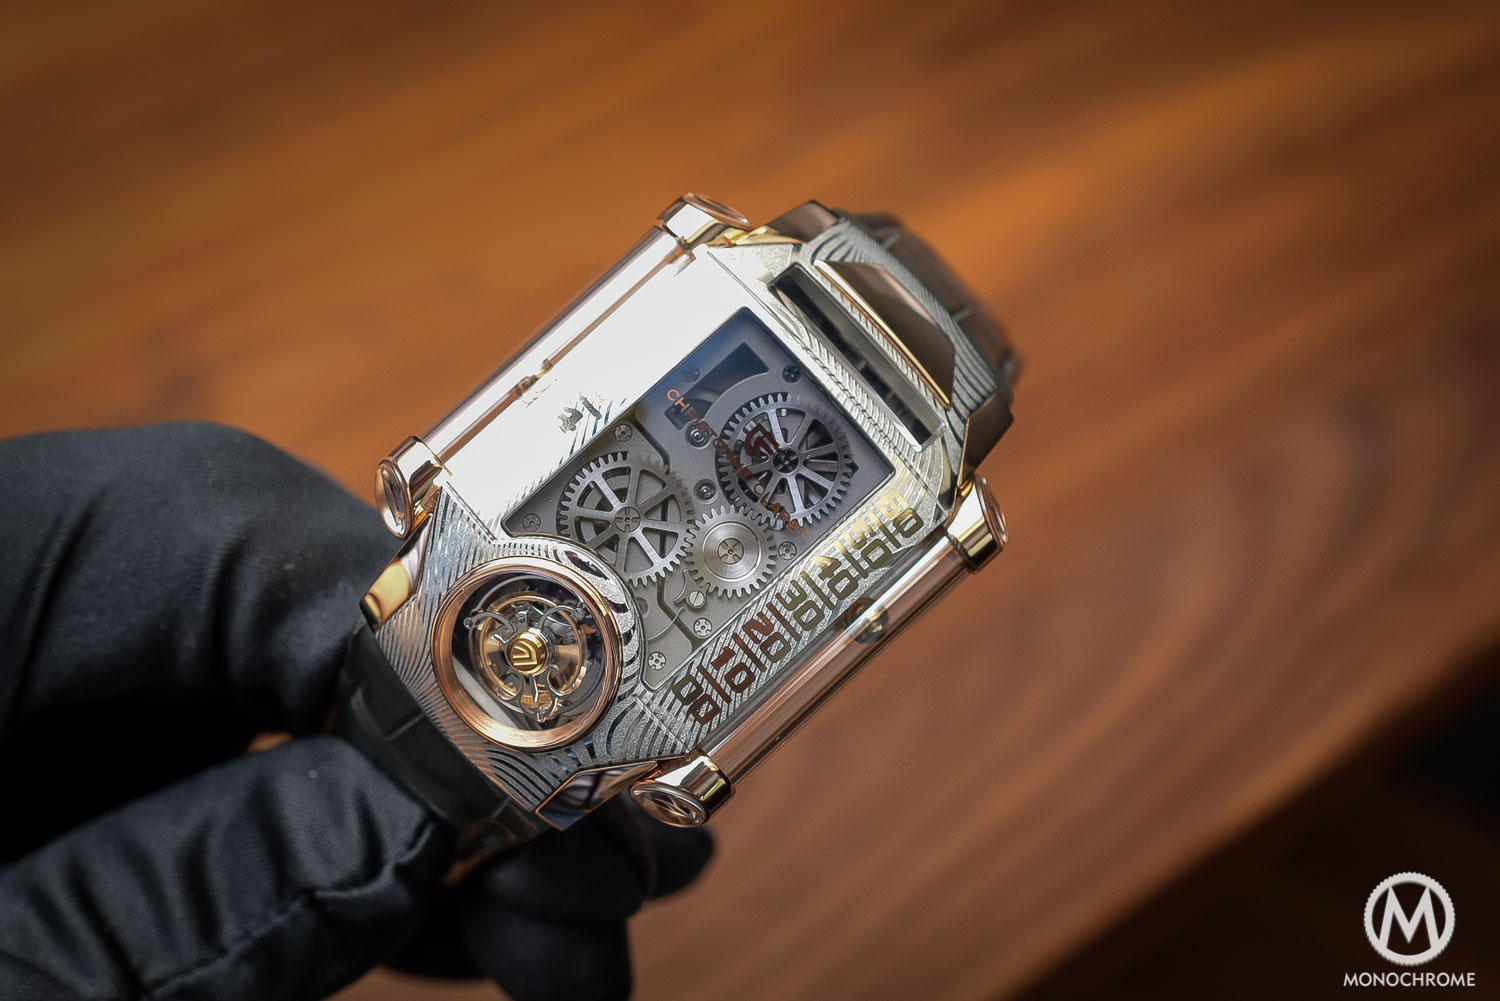 Hands-on - Christophe Claret X-Trem 1 in Damascus steel – tourbillon and magnetic display encased in an antique material